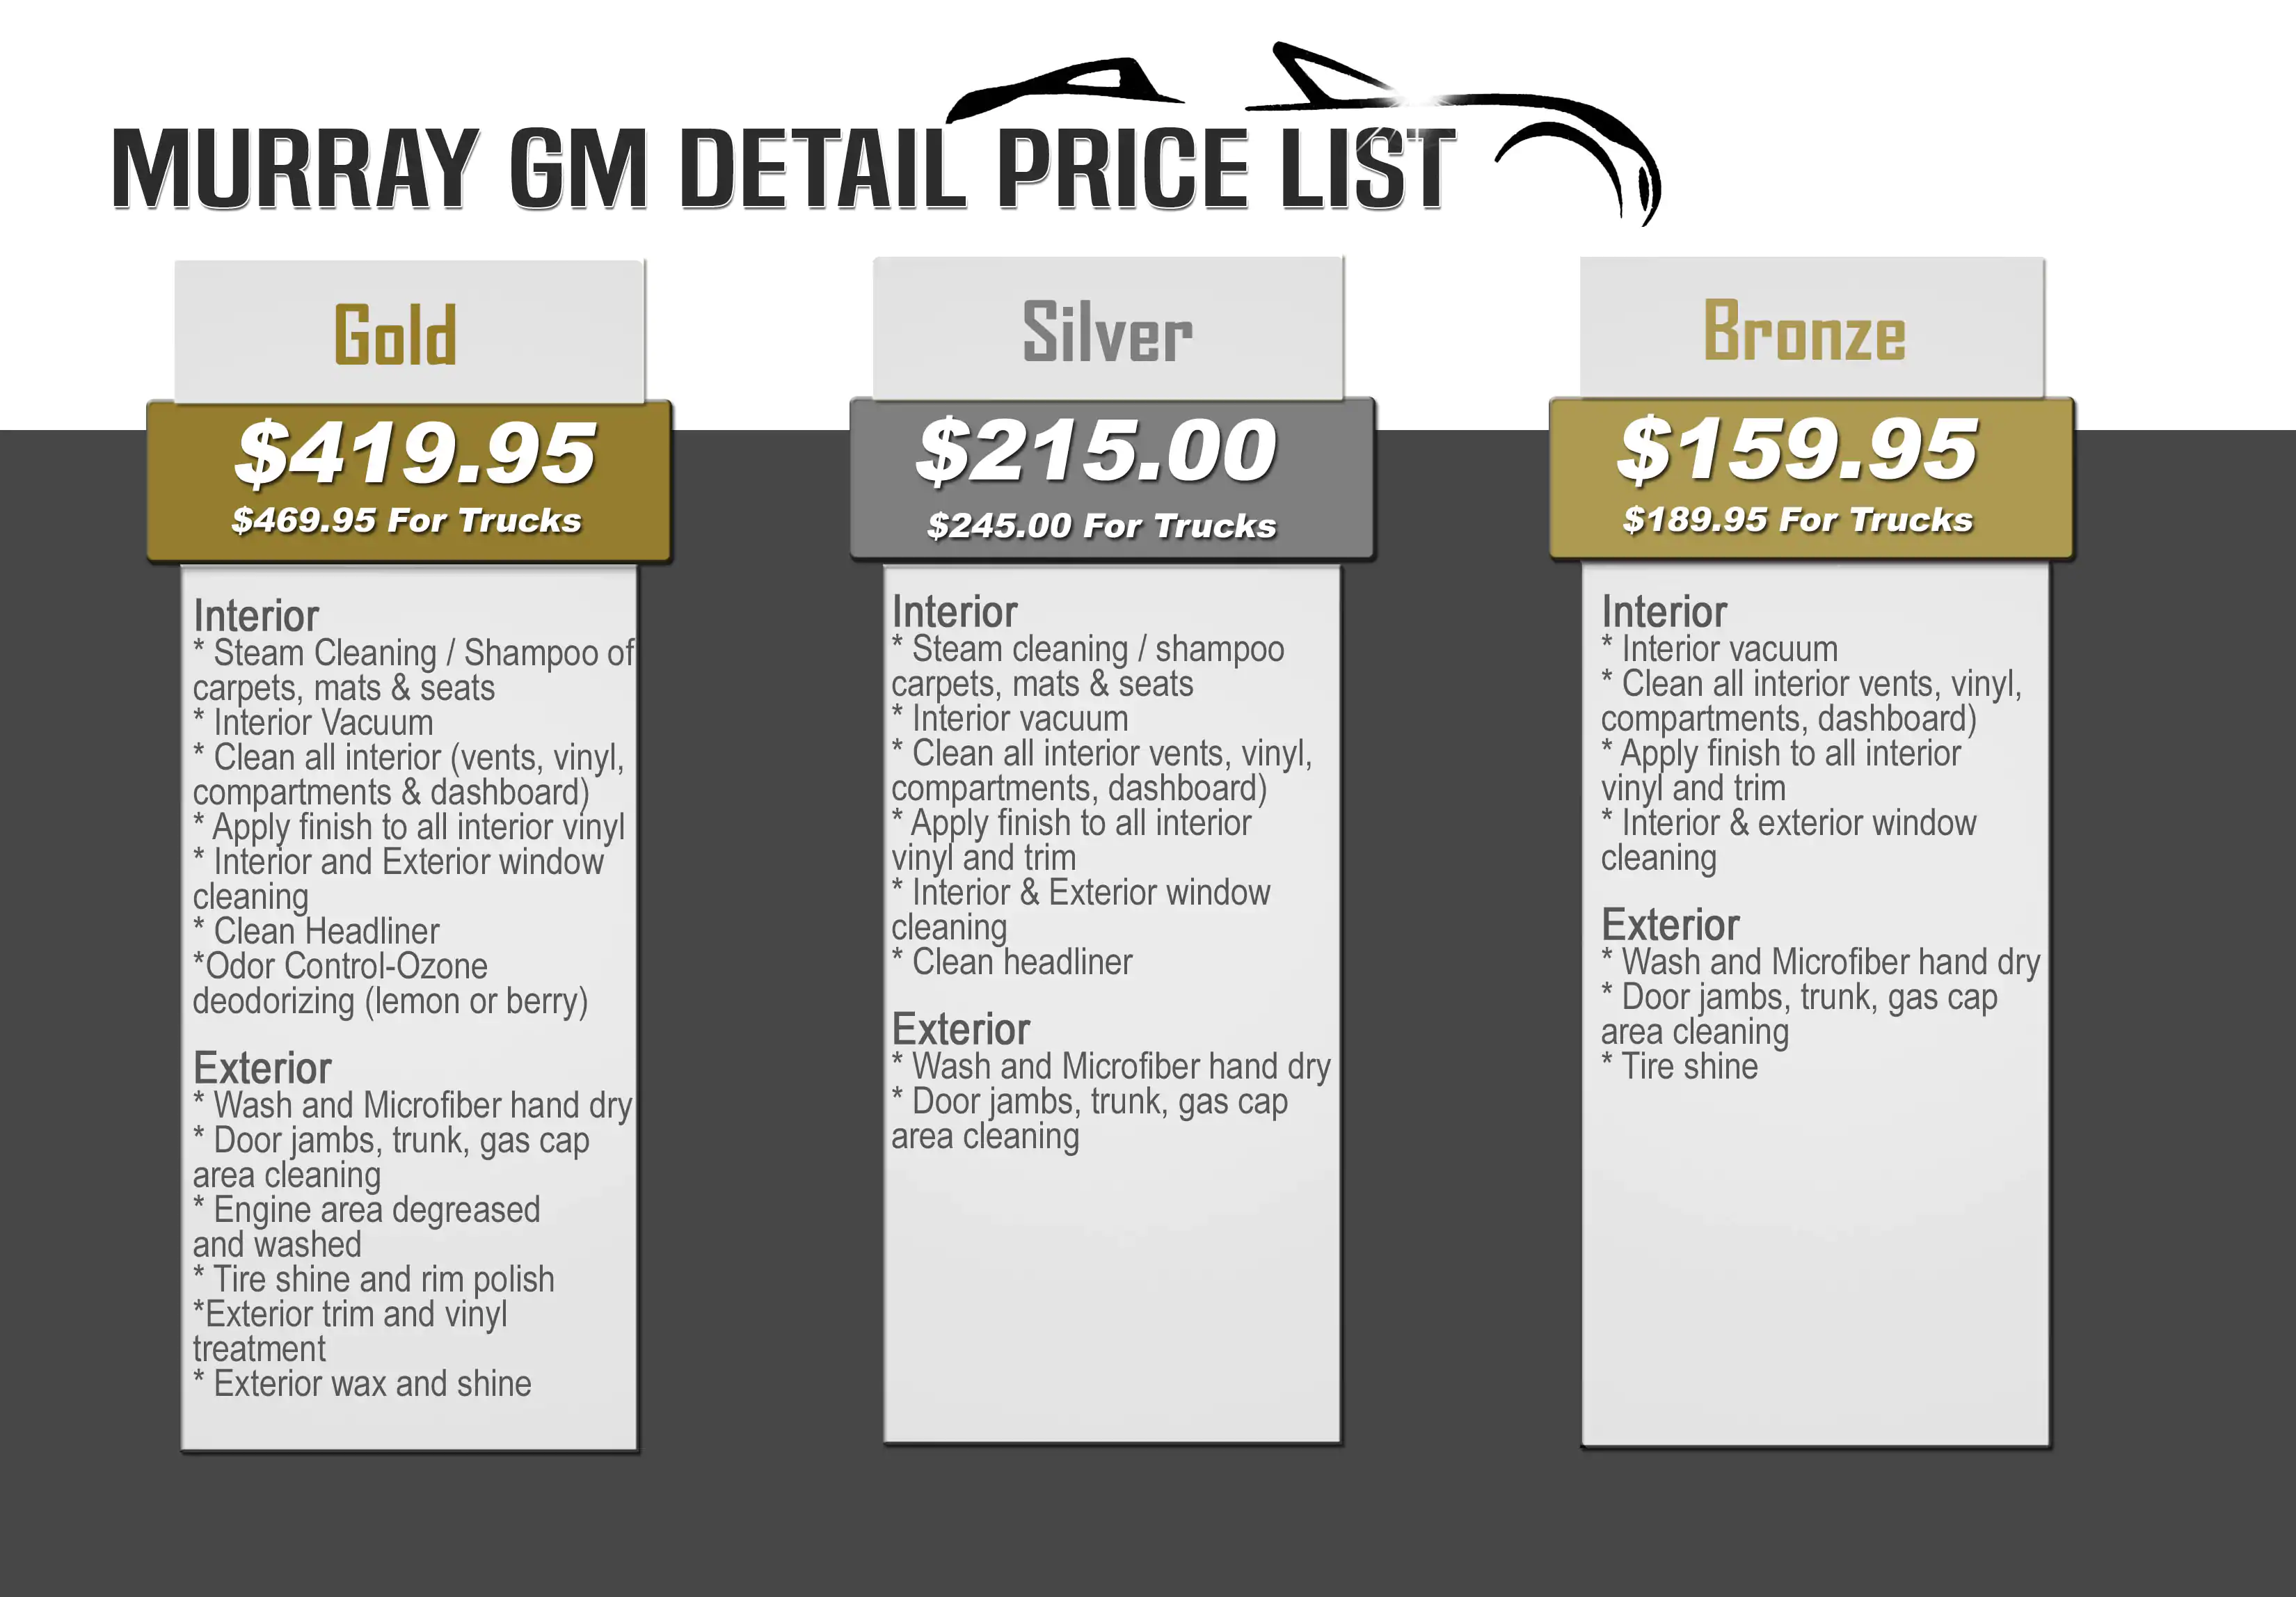 Murray GM Detail Price List